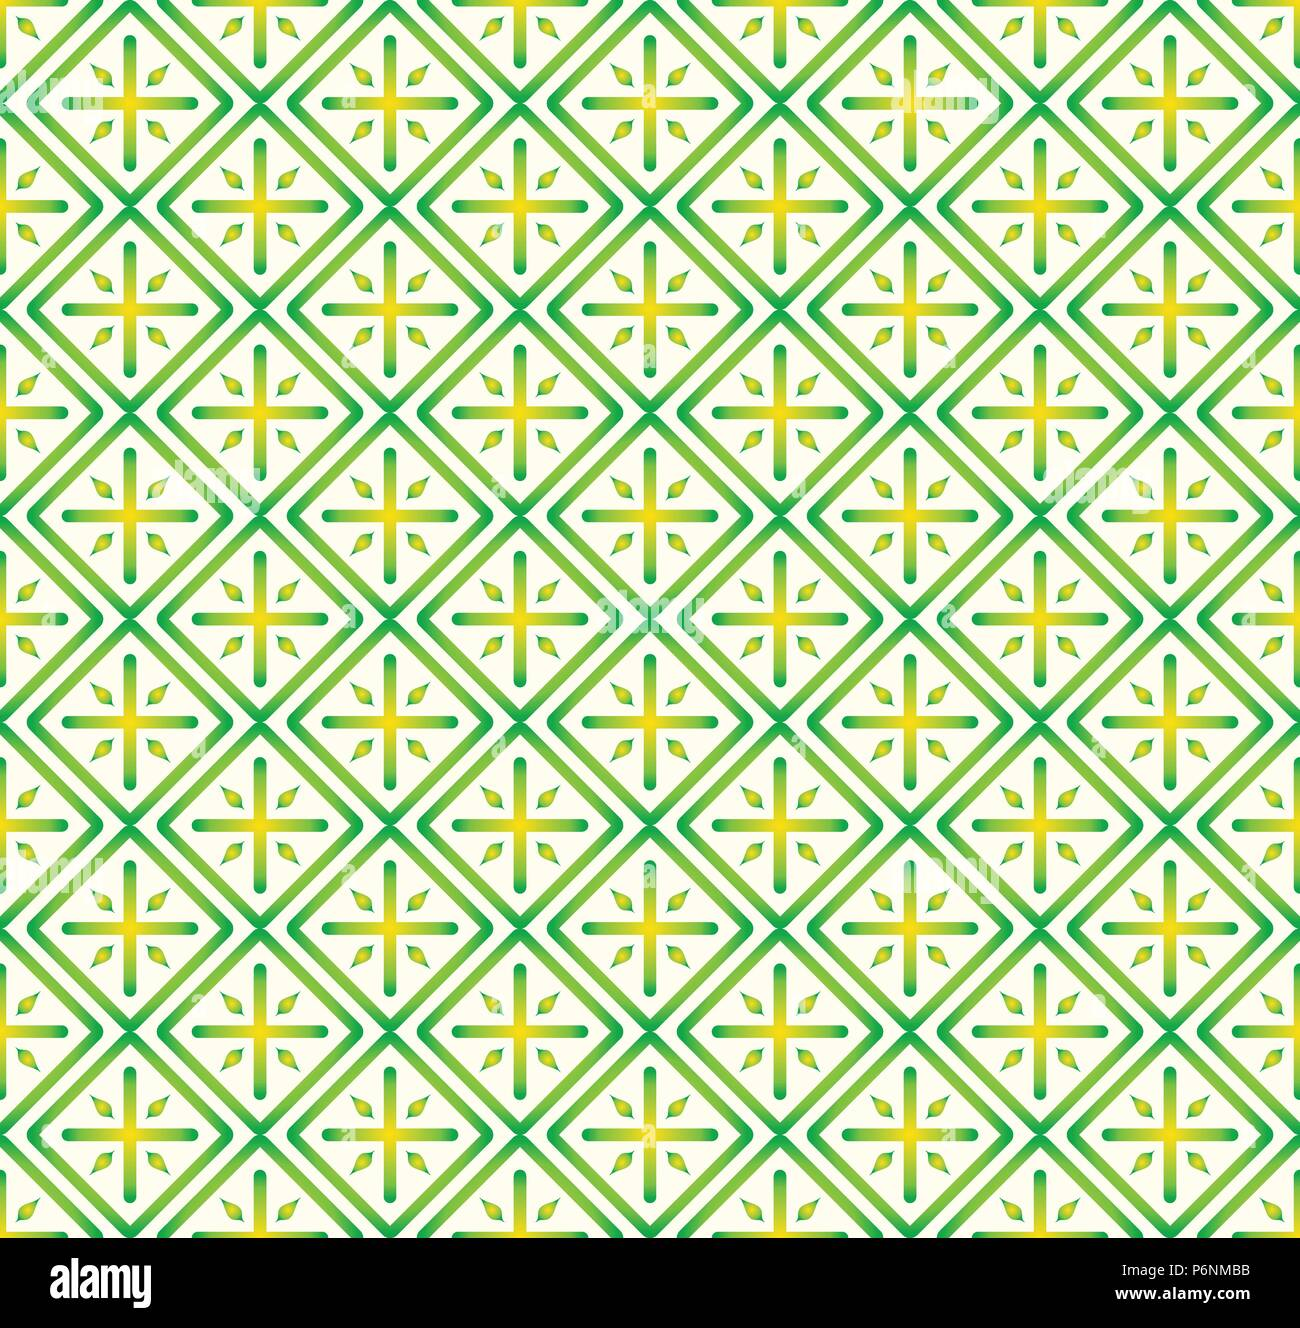 Green Plus sign and rectangle shape seamless pattern. Abstract pattern style for graphic or modern design. - Stock Vector